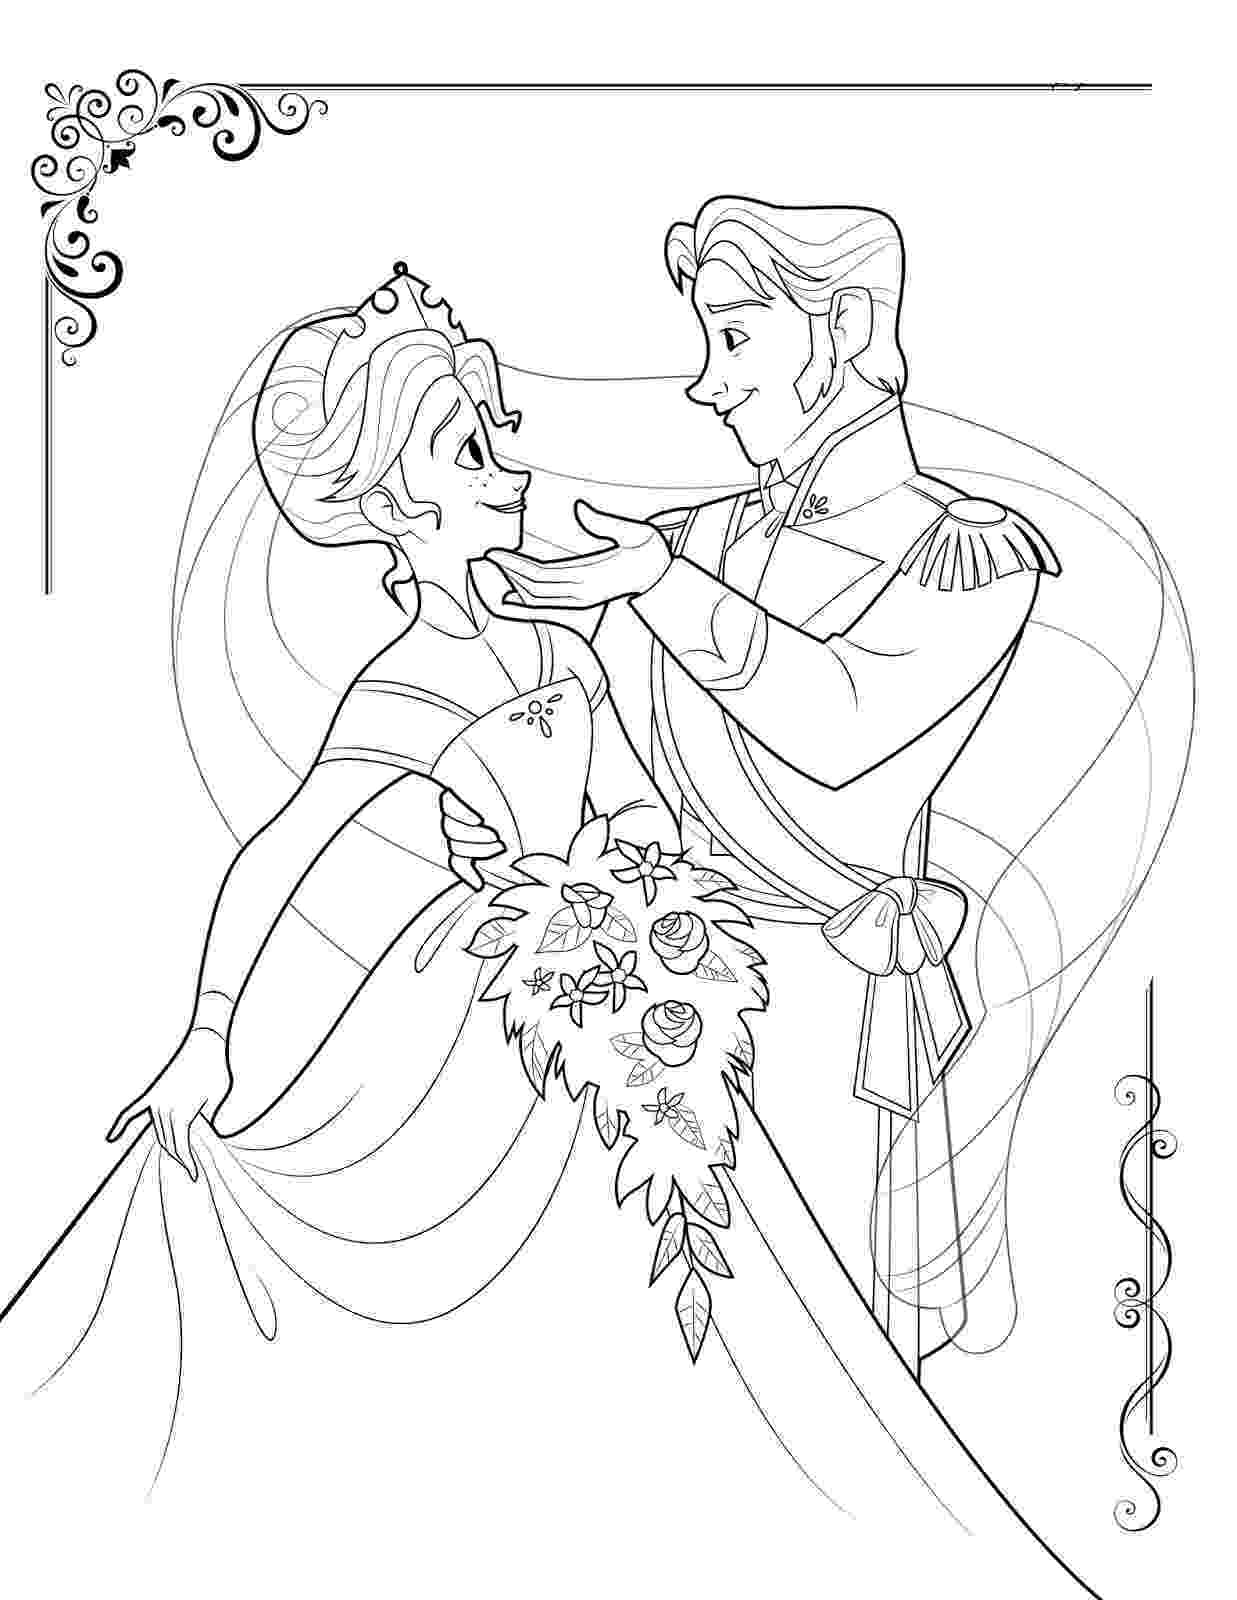 coloring pages for frozen characters frozen to color for children frozen kids coloring pages frozen characters coloring pages for